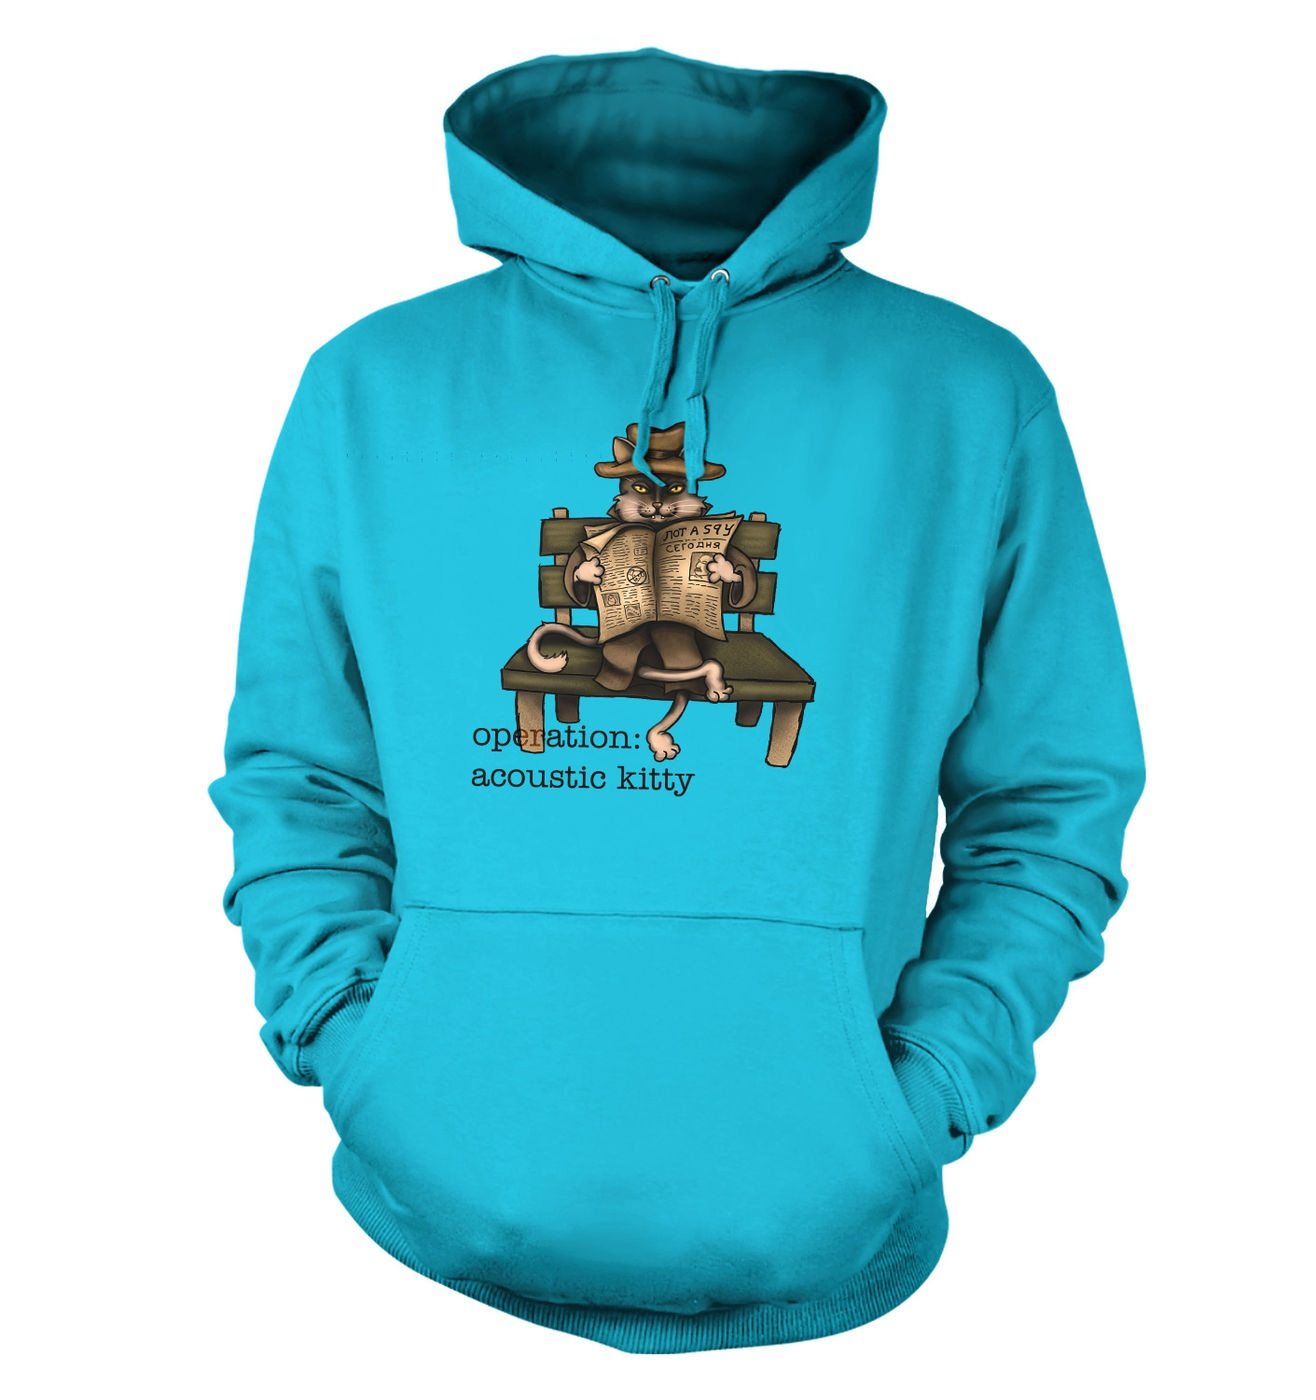 Operation Acoustic Kitty hoodie - funny hoody based on real history!